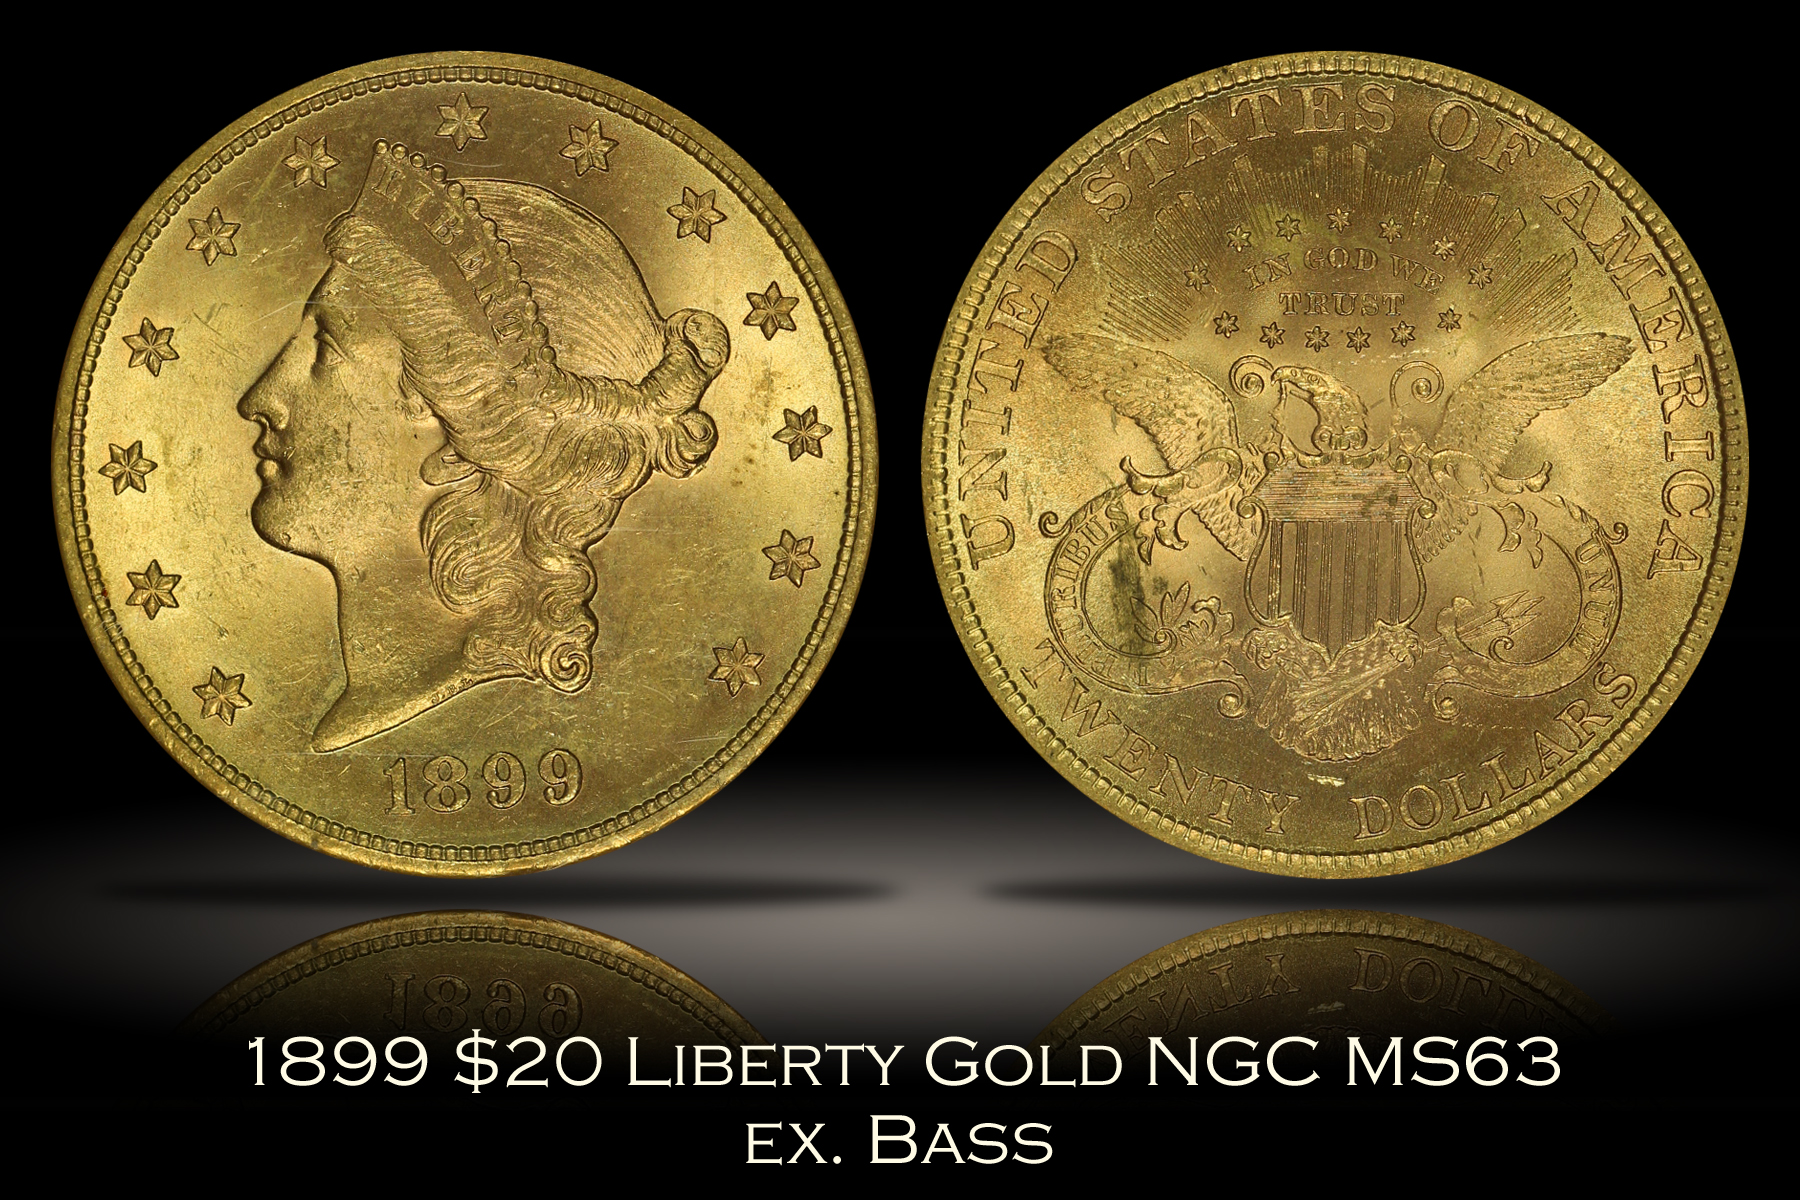 1899 $20 Liberty Gold NGC MS63 ex. Bass